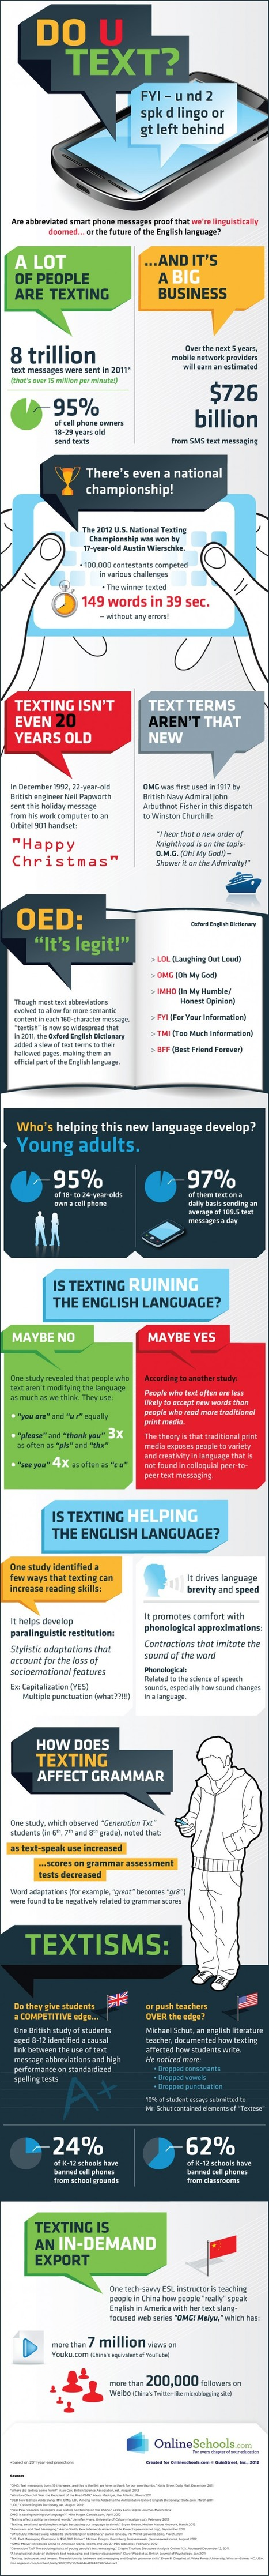 How Texting Is Changing Your Grammar [Infographic] | Free to Express | Scoop.it